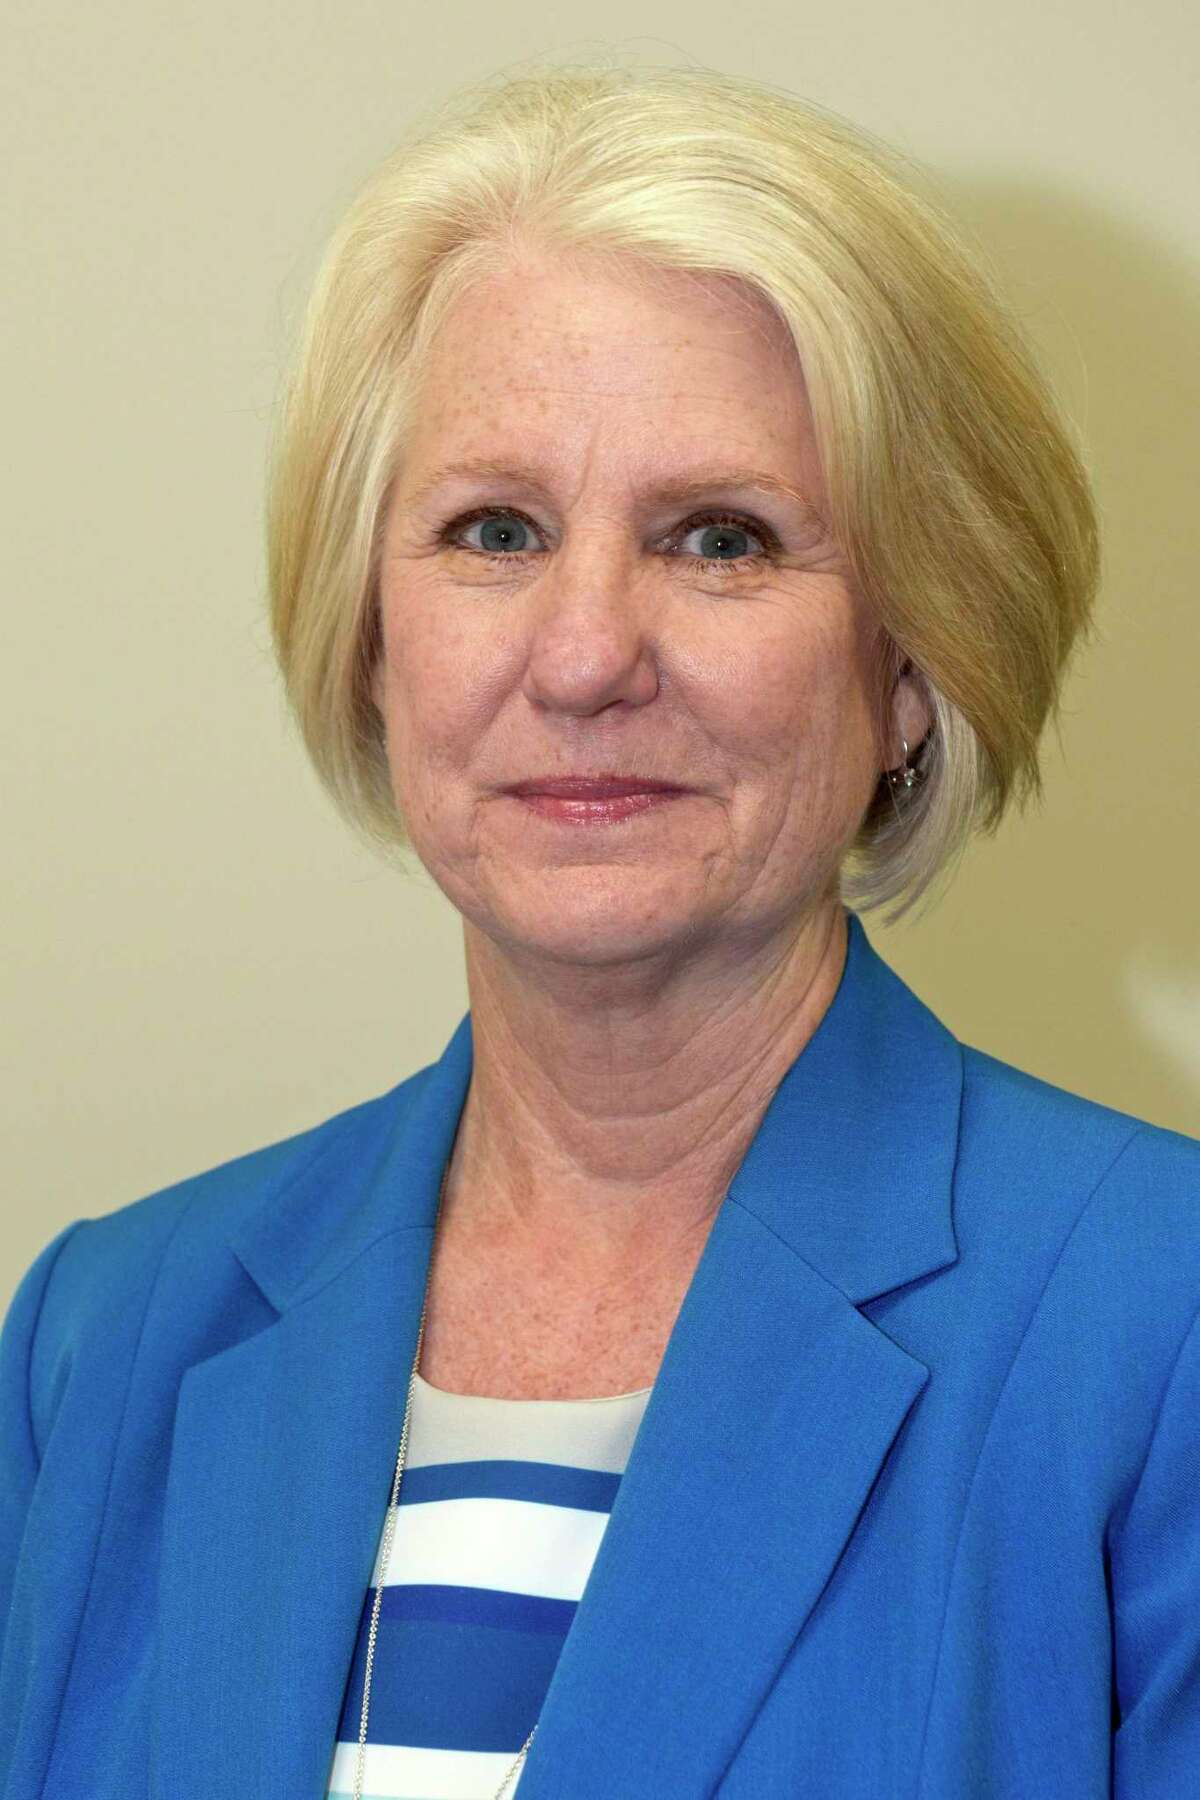 New Fairfield First Selectman Pat Del Monaco is looking at an unopposed race for re-election with no Republican candidate endorsed to challenge her this November.